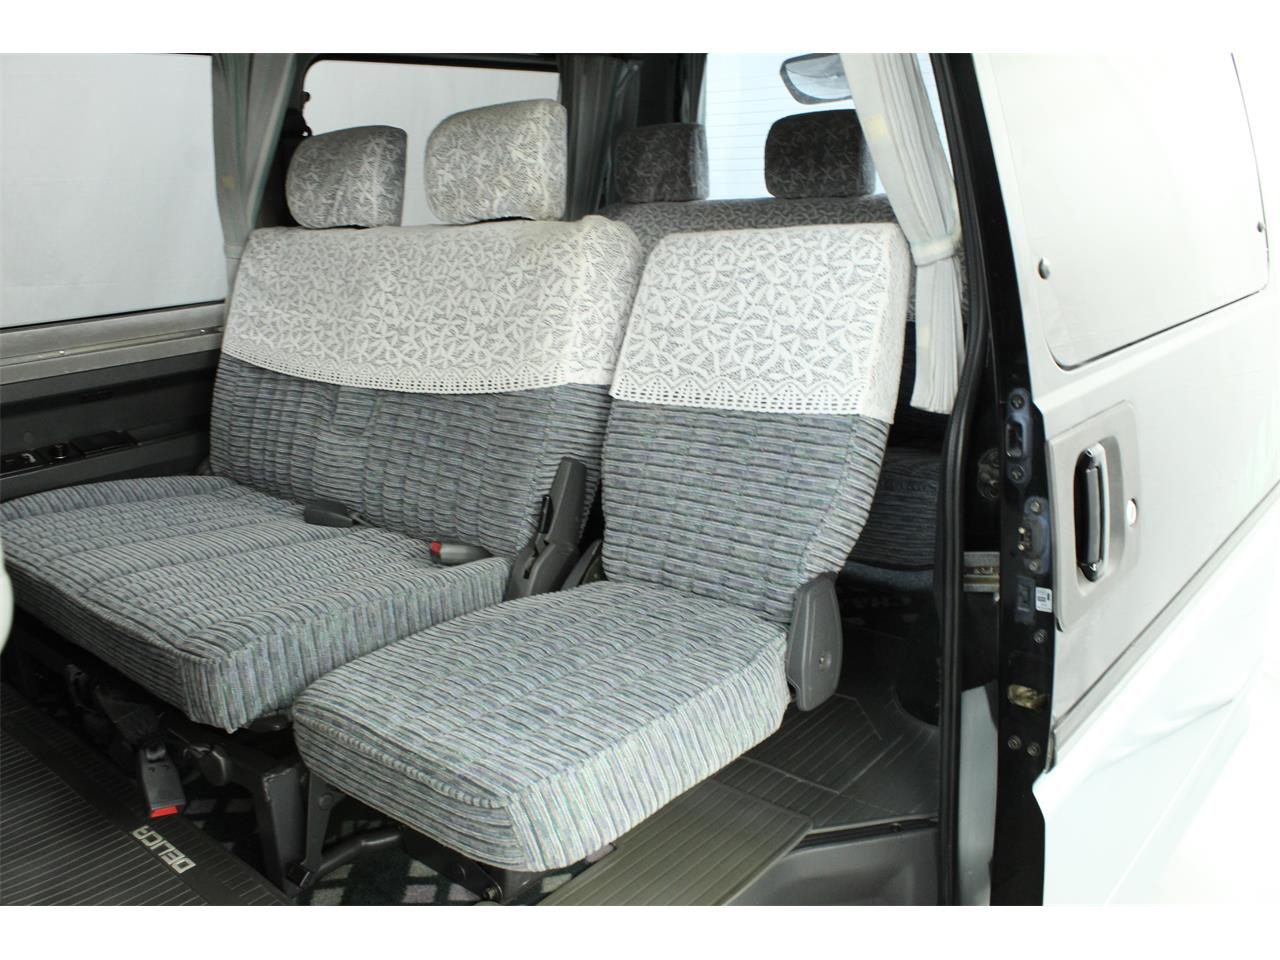 1992 Mitsubishi Delica for sale in Christiansburg, VA – photo 36